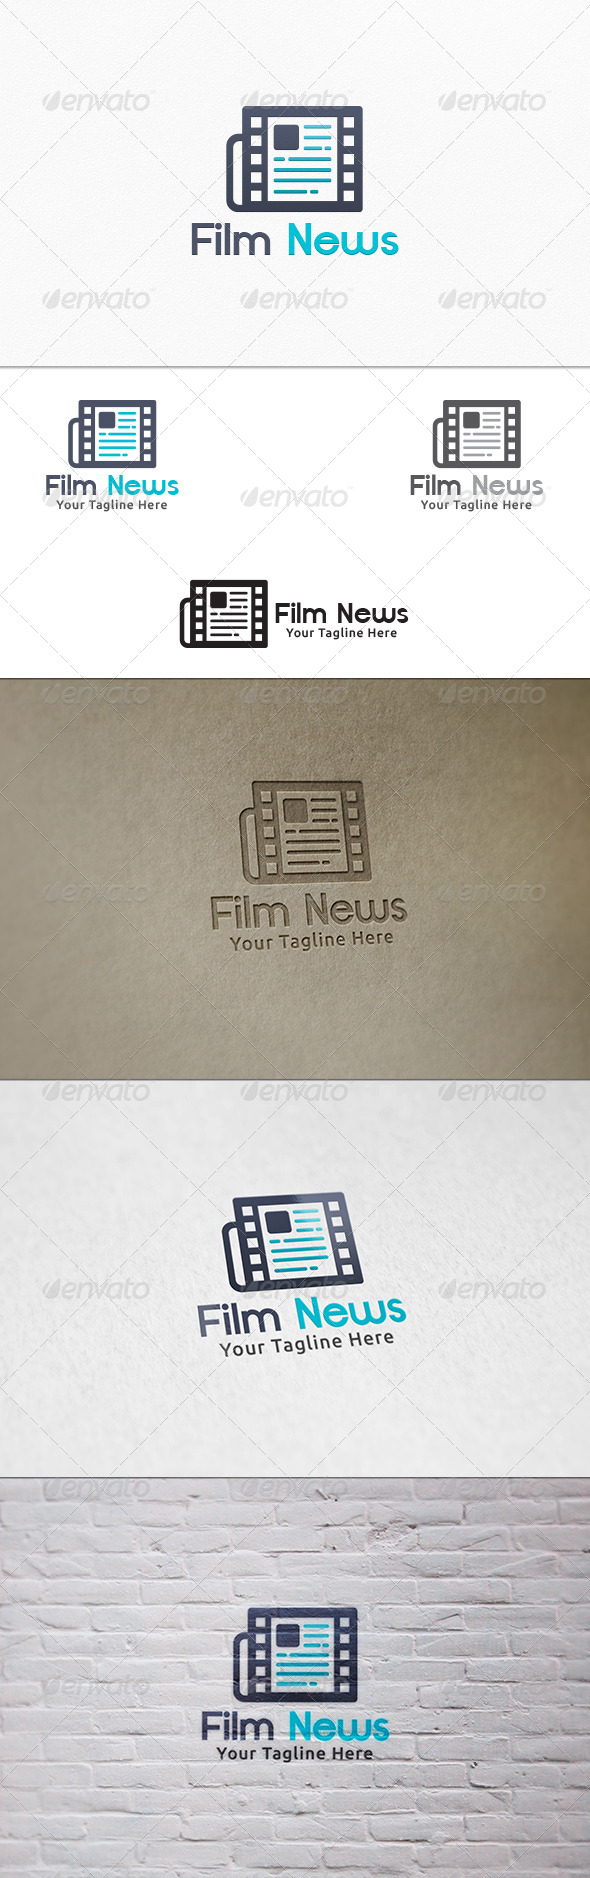 GraphicRiver Film News V2 Logo Template 7290481